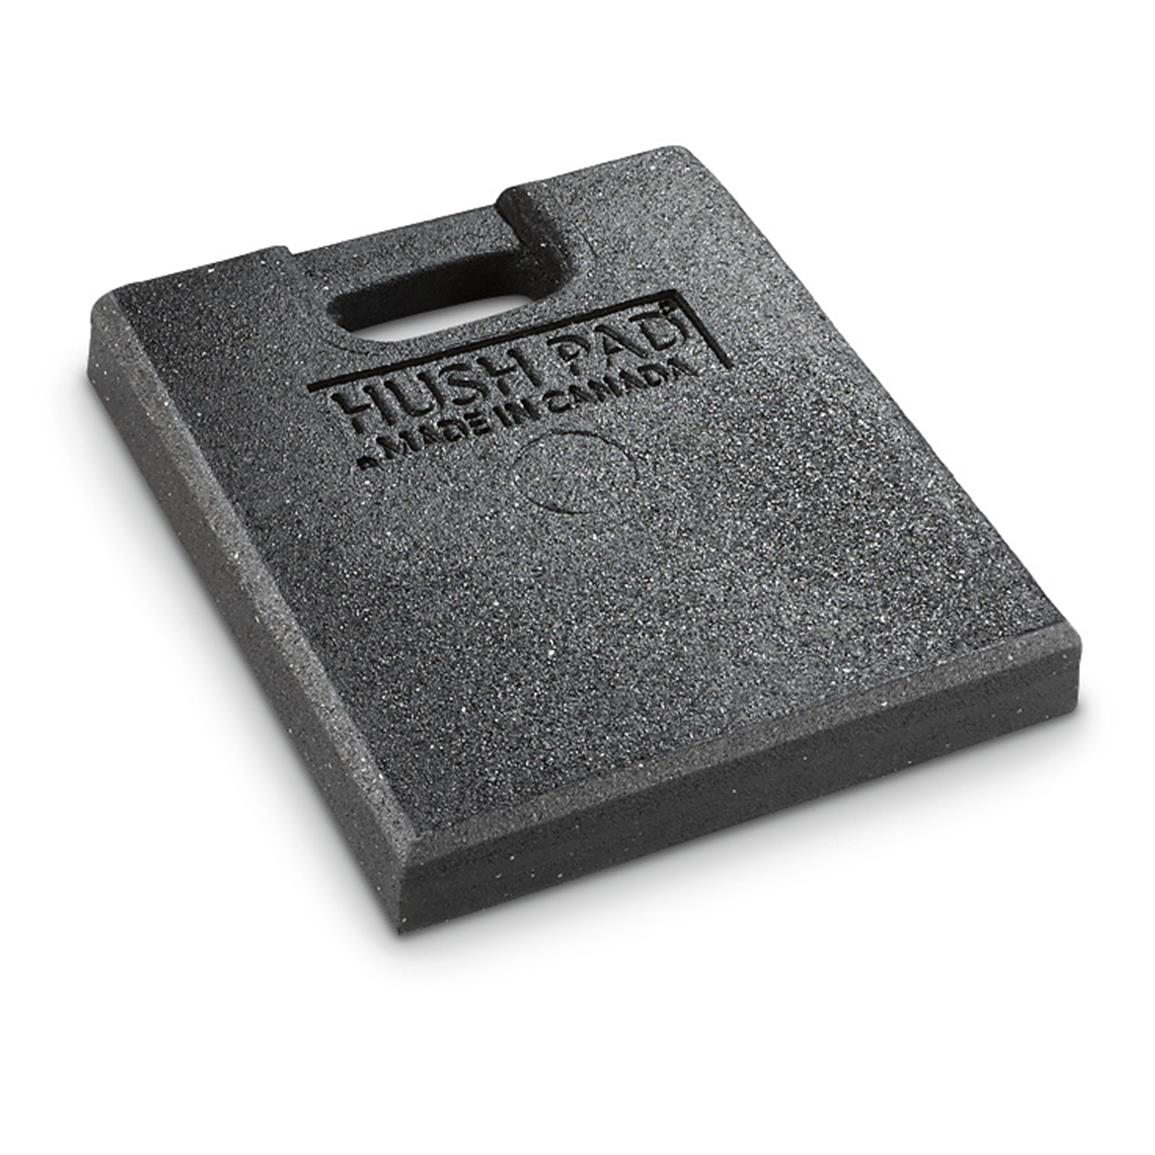 Technoflex RV Hush Pad